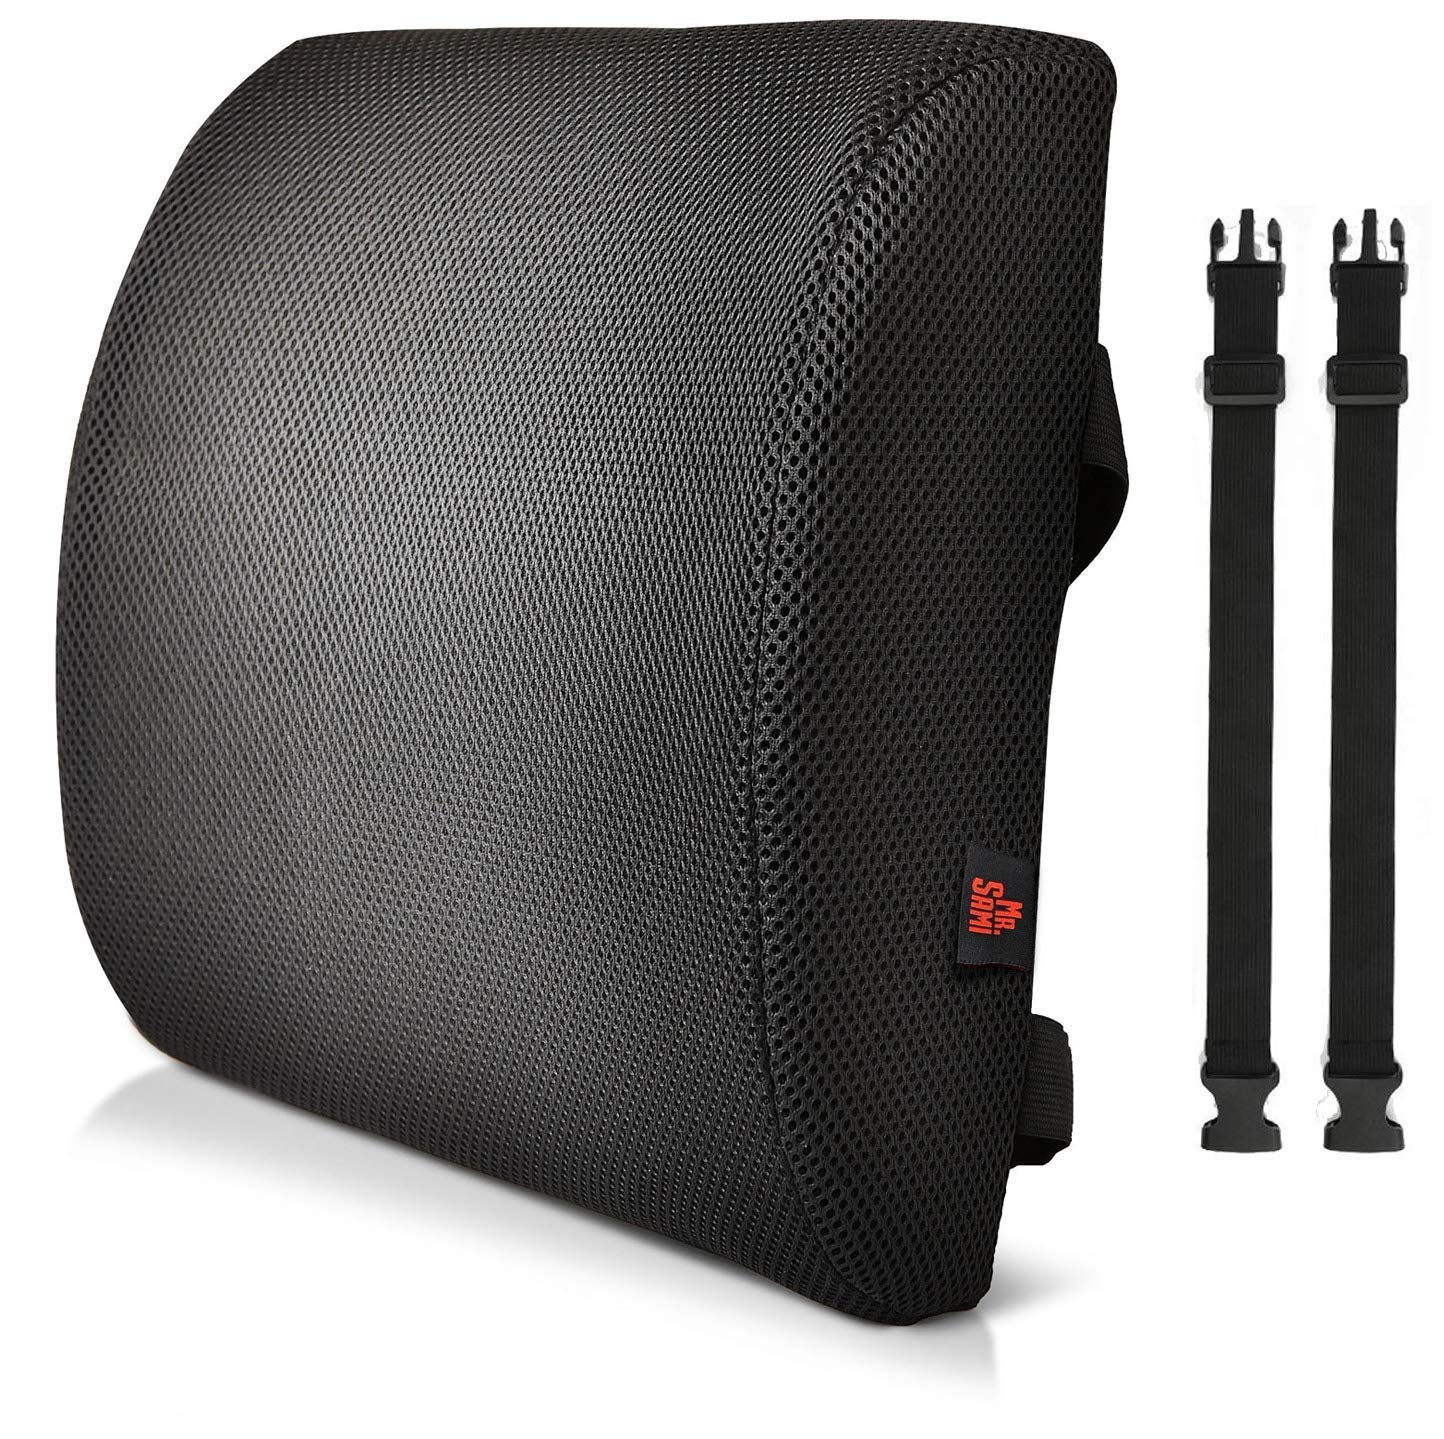 Mr Sami Lumbar Support Cushion Premium Back Support for Ergonomic Office Chair Memory Foam Back Pillow with Dual Adjustable Long Straps and Washable Cover Perfect Lower Back Support for Long Trips